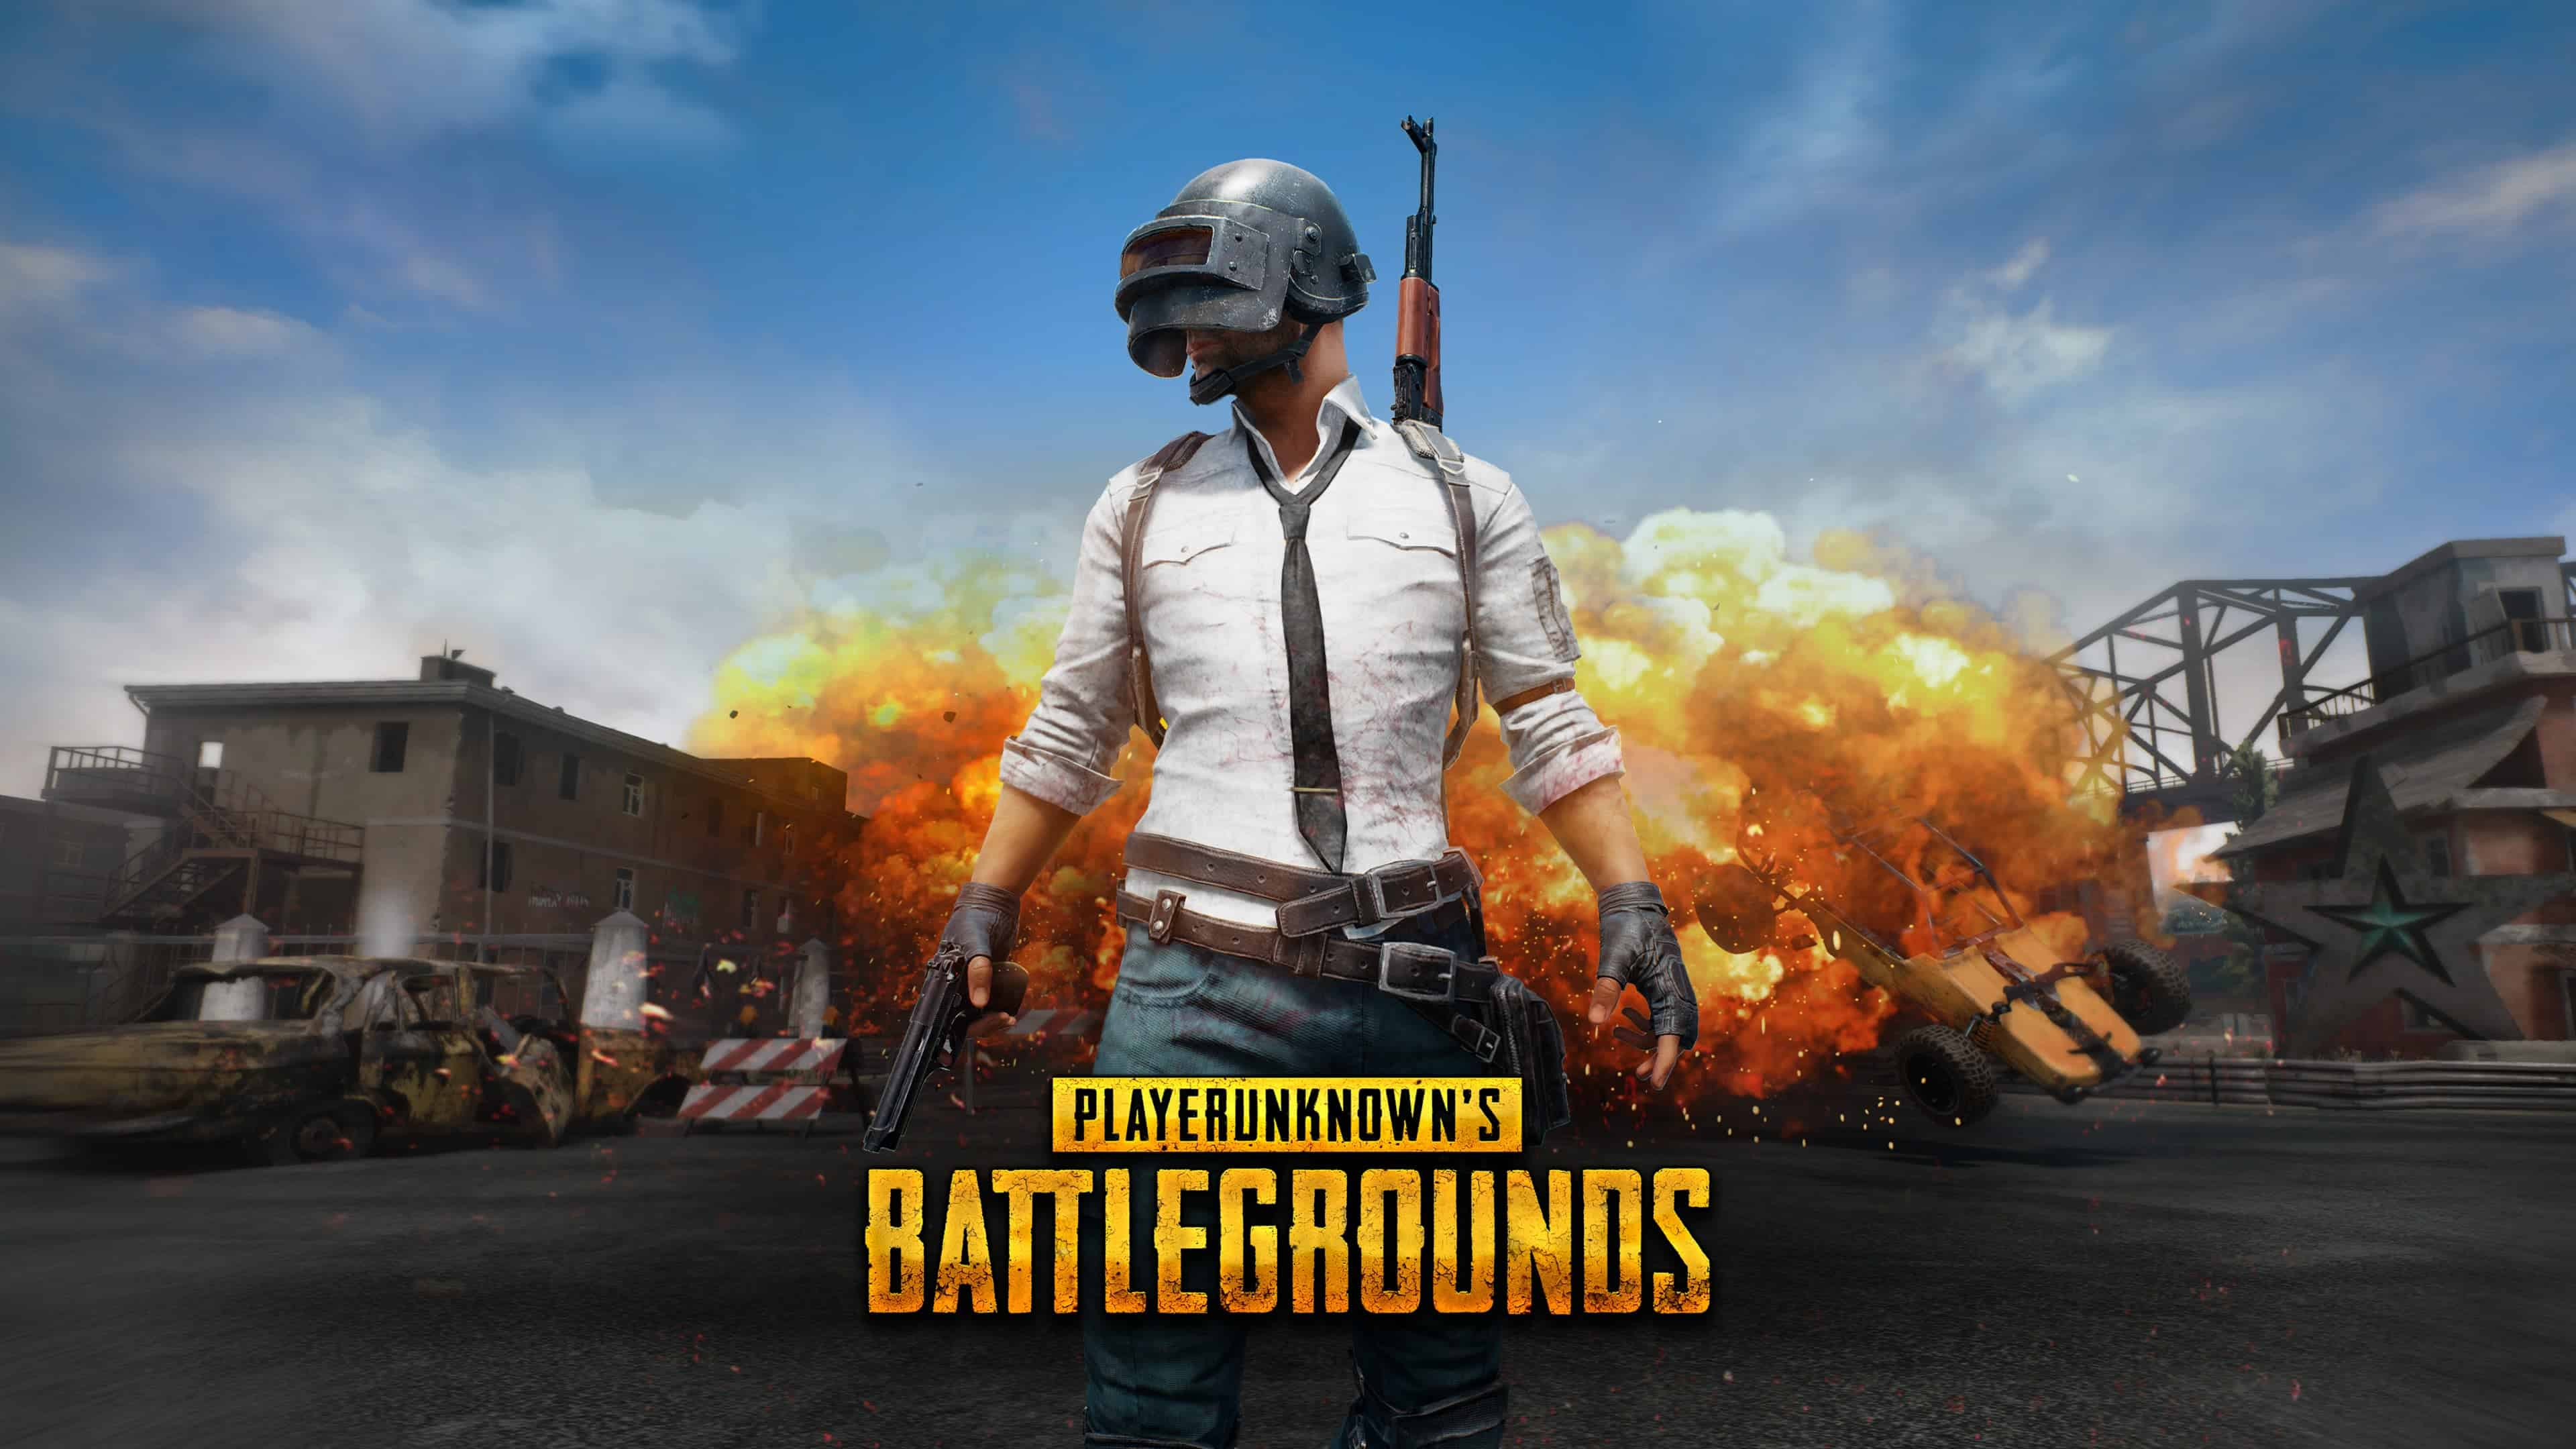 pubg-player-unknown-battlegrounds